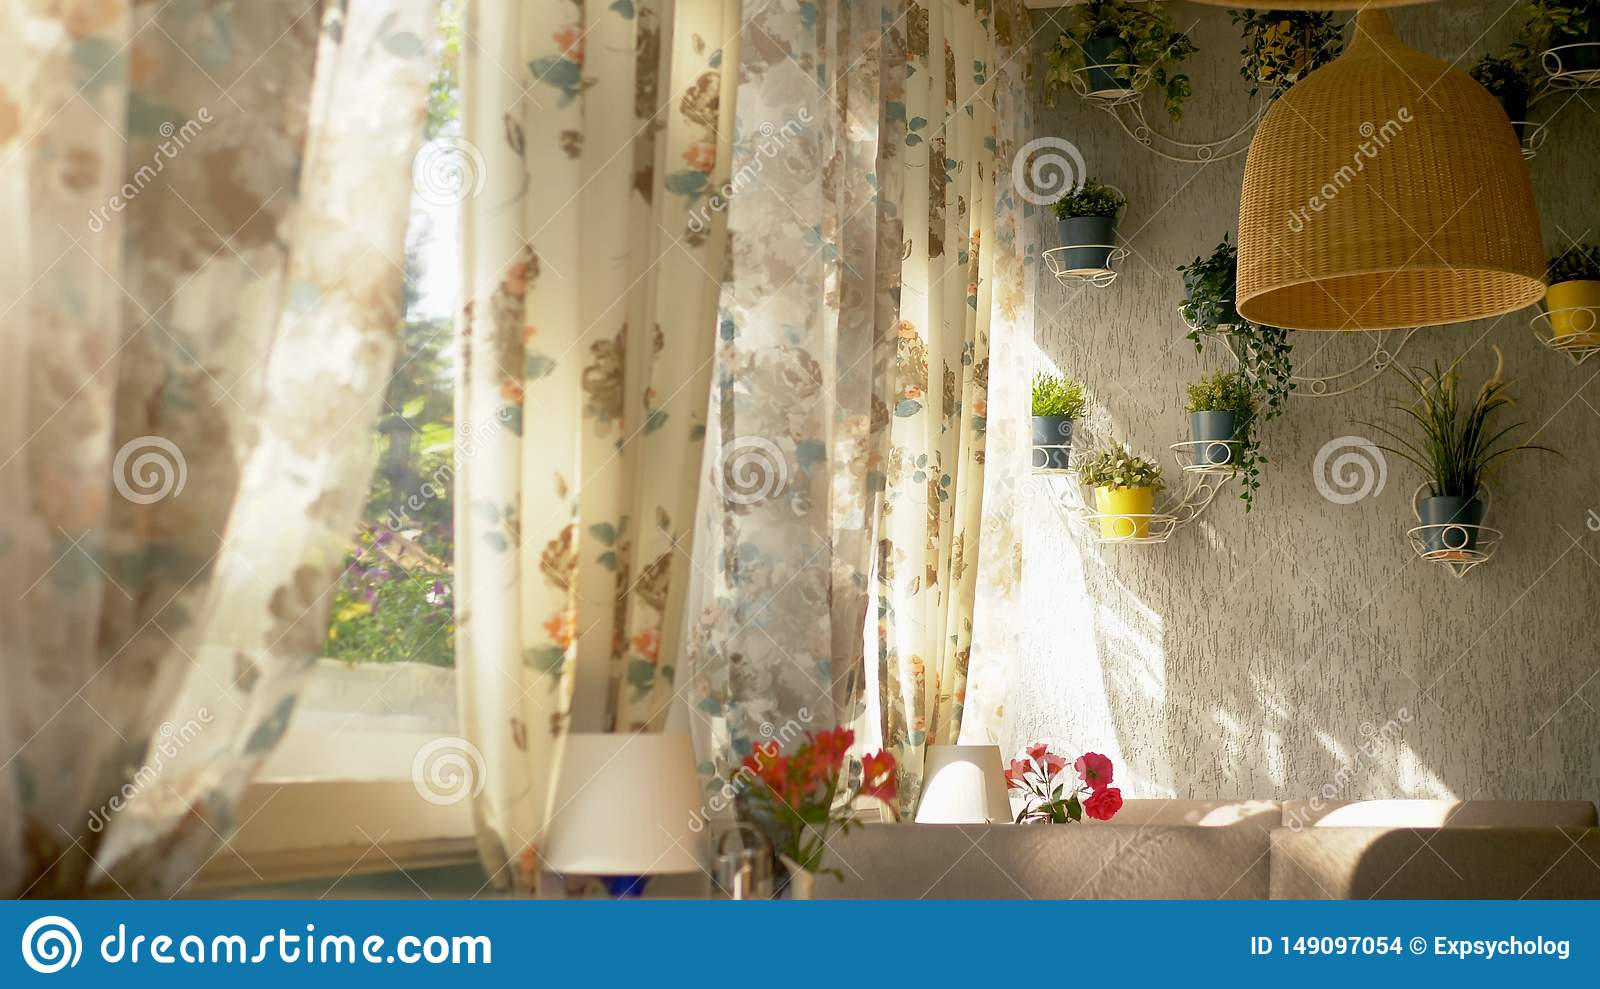 The concept of the interior windows. large full-length windows decorated with floral print curtains and house wall